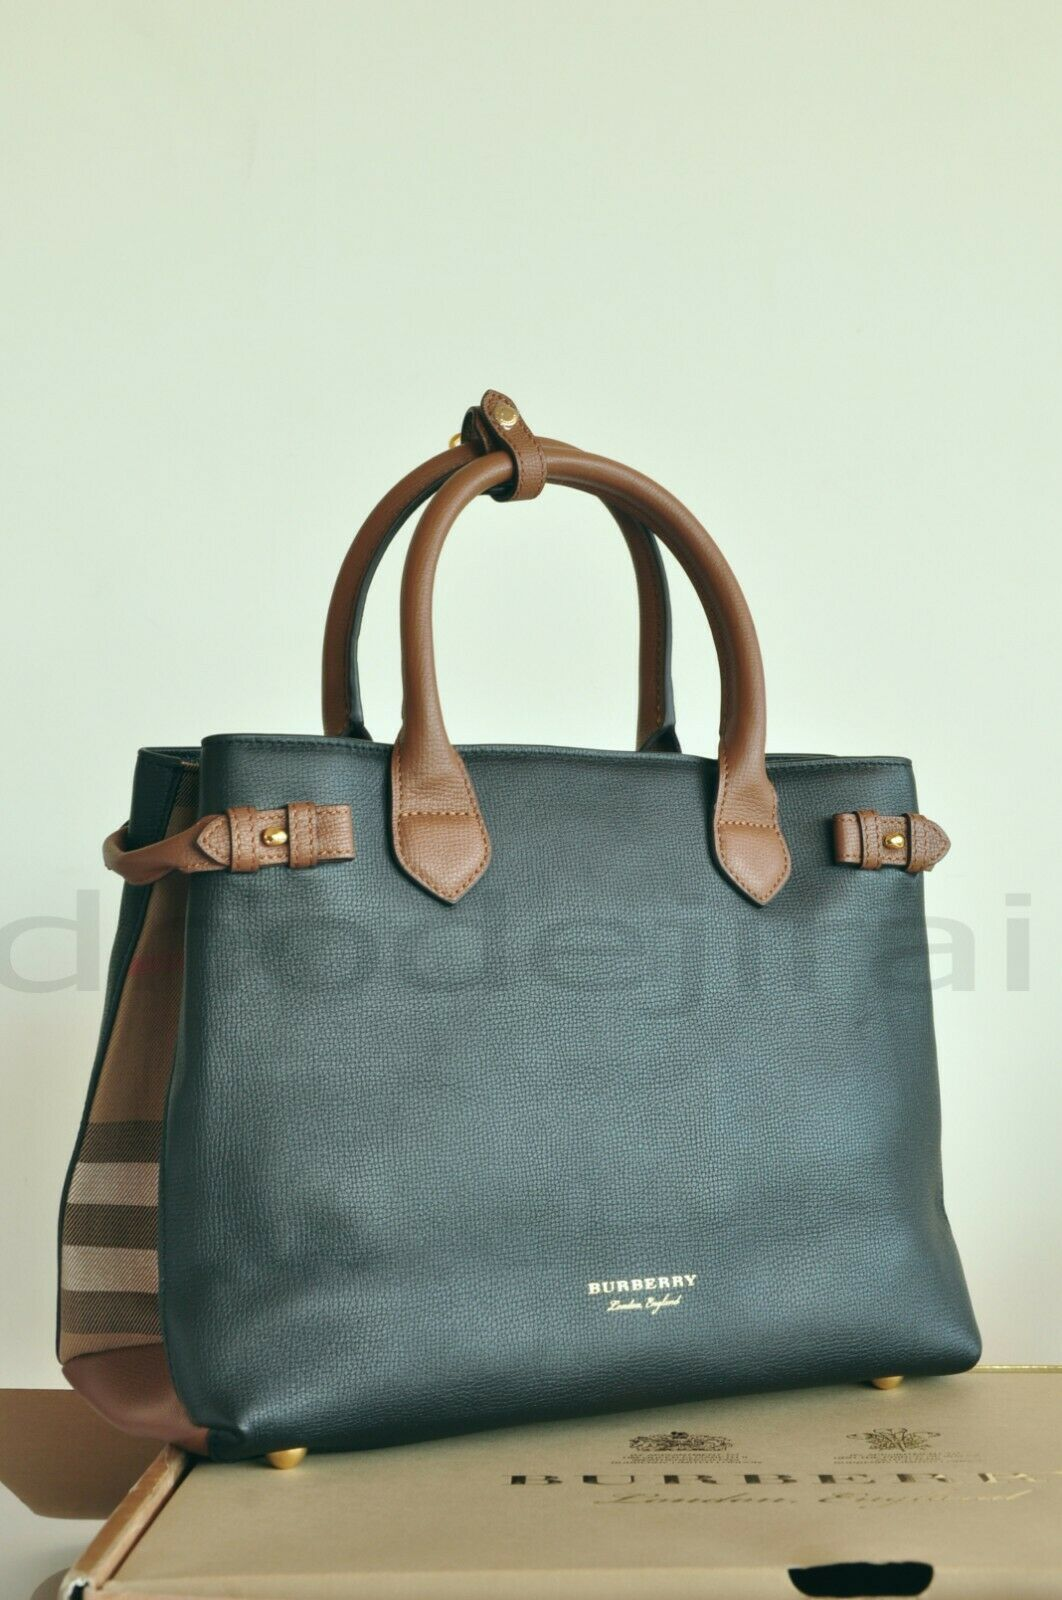 775743315b6c Details about Burberry Women s Small Alchester in Horseferry Check ...